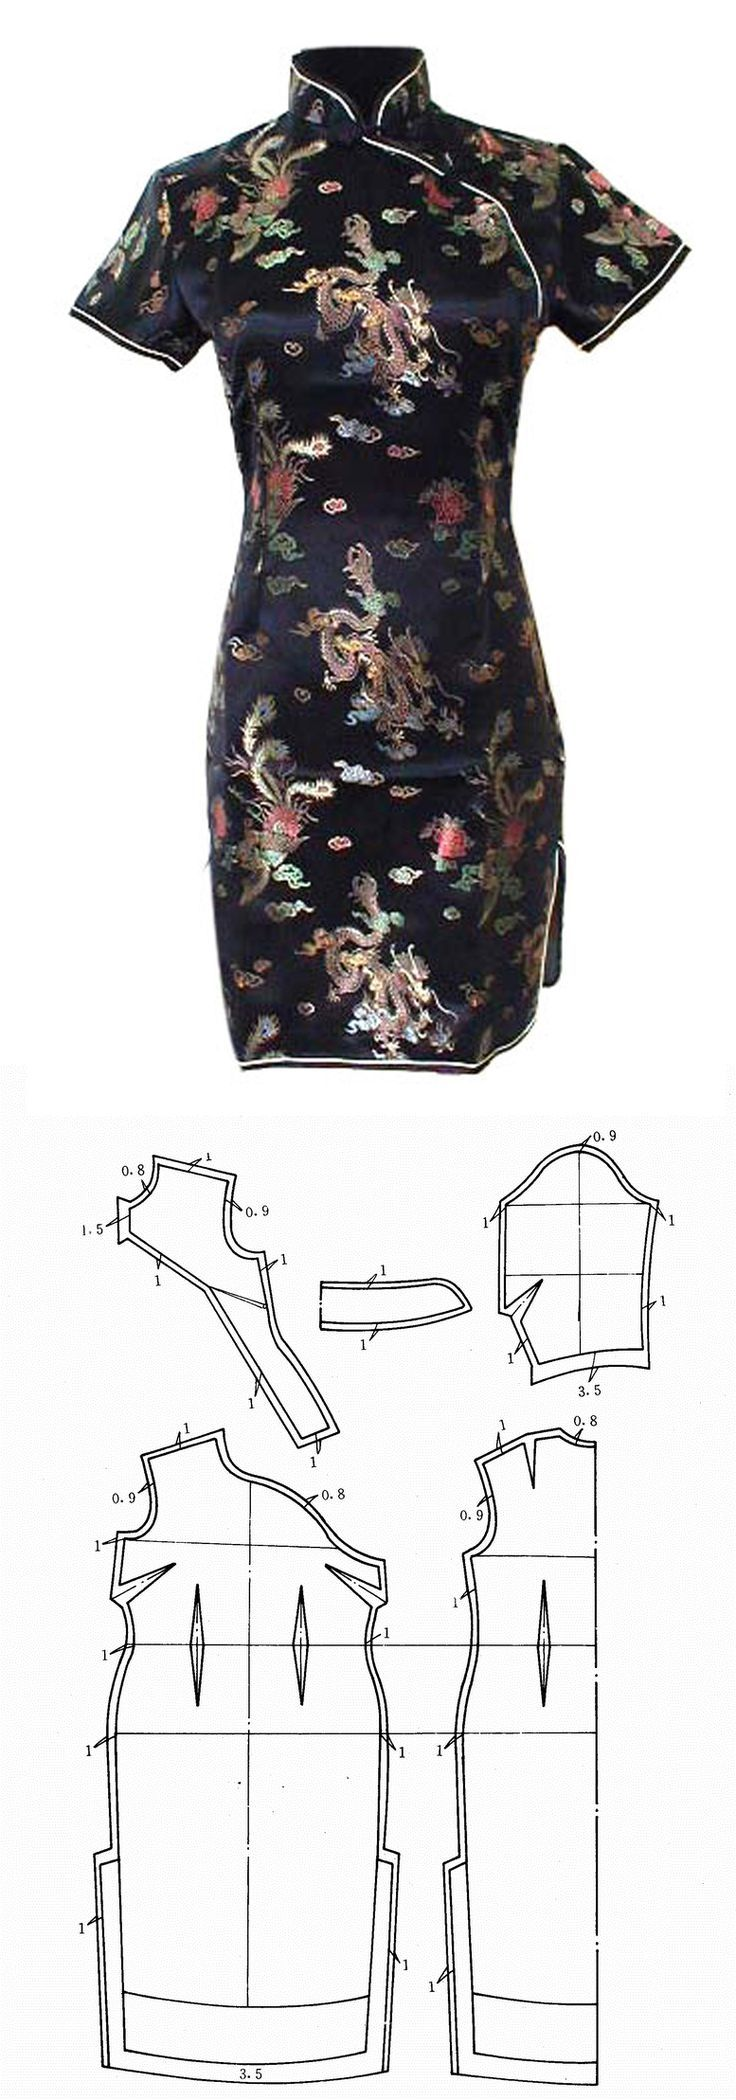 How to make chinese dress cheongsam dress pattern dresses how to make chinese dress cheongsam dress pattern dresses ideas pinterest dress making patterns cheongsam dress and cheongsam jeuxipadfo Image collections